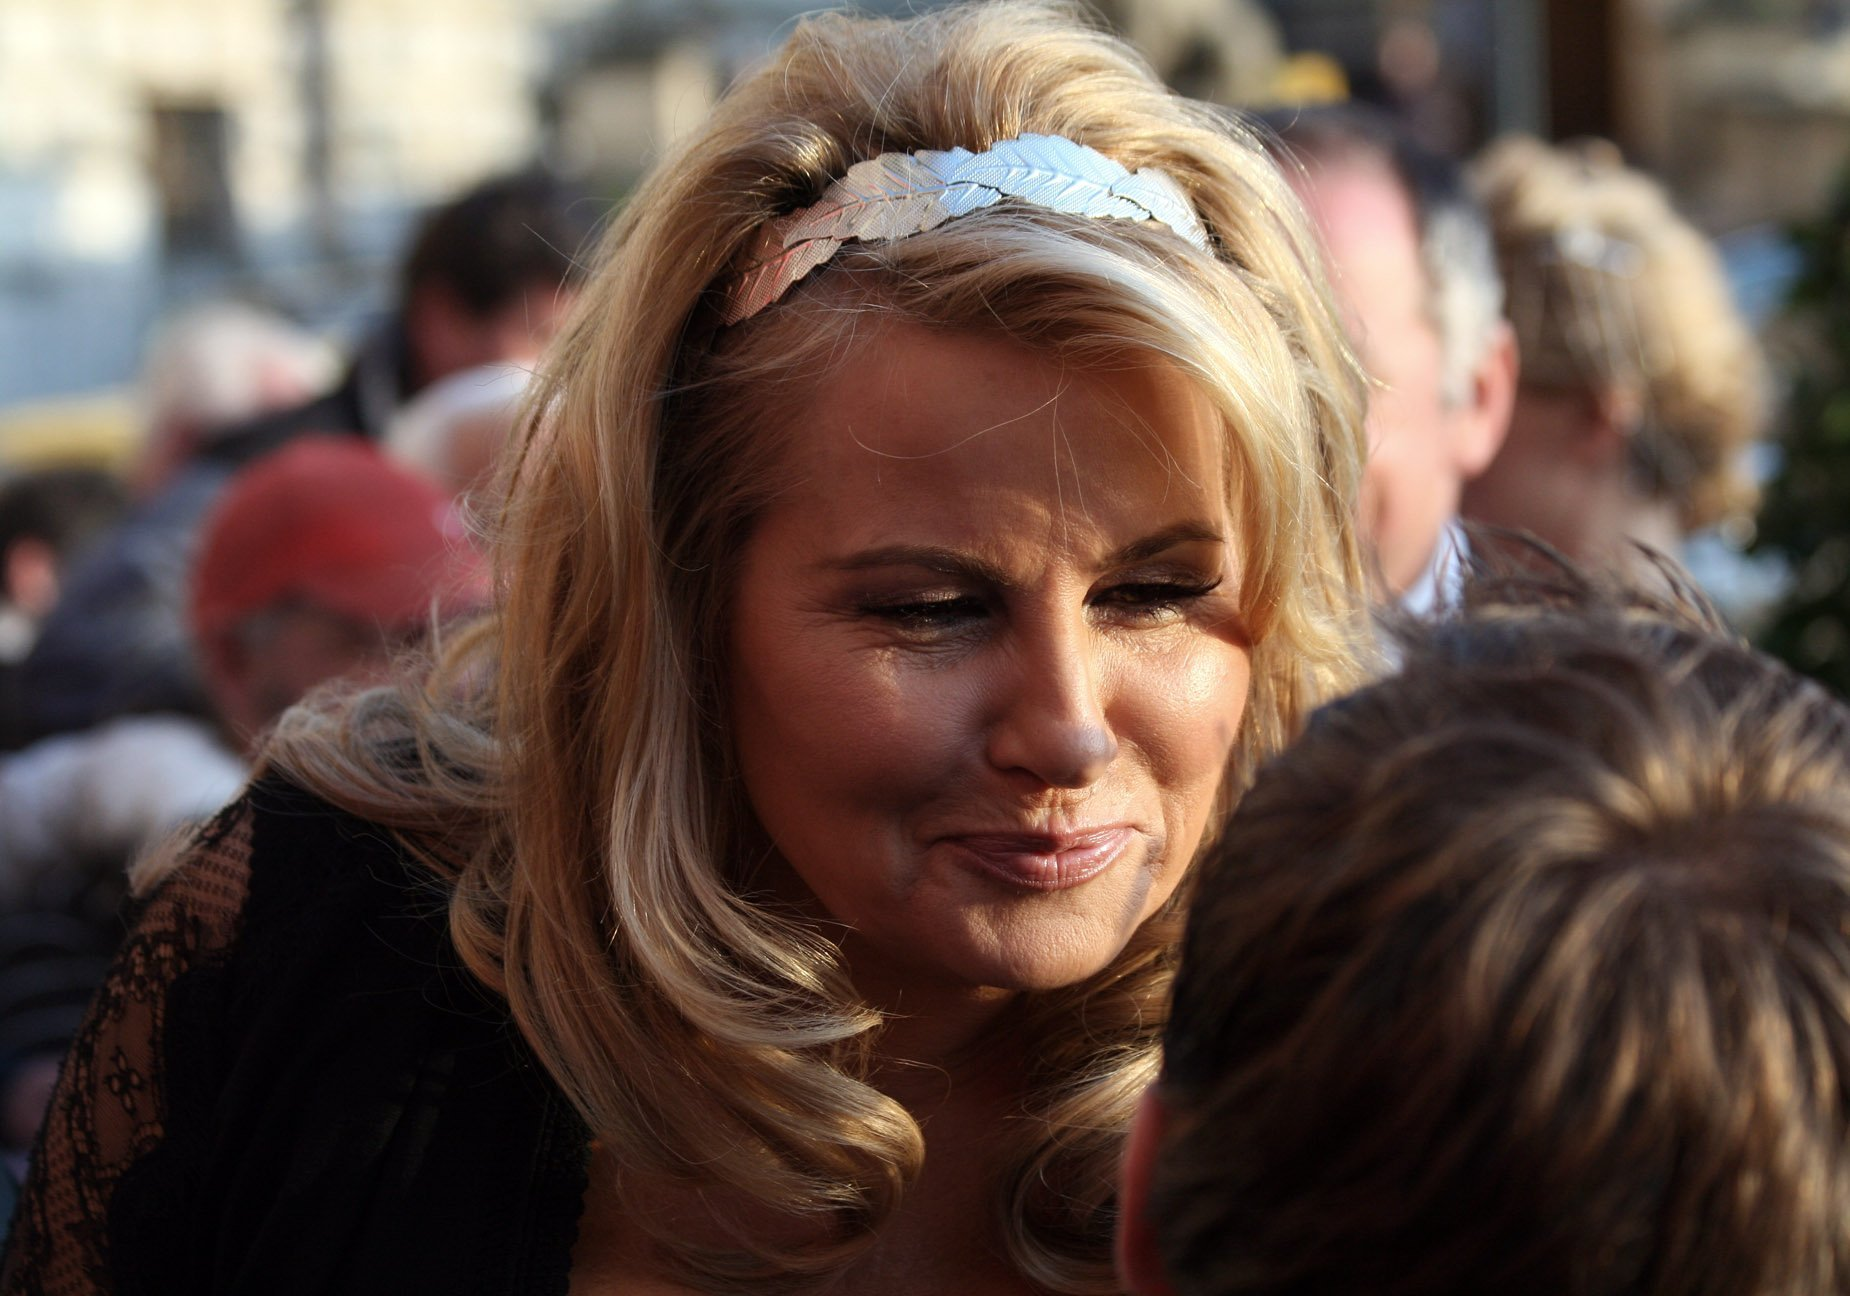 Jennifer Coolidge at the Romy TV awards at Hofburg Imperial Palace in Vienna on April 12, 2012 | Photo: Wikimedia